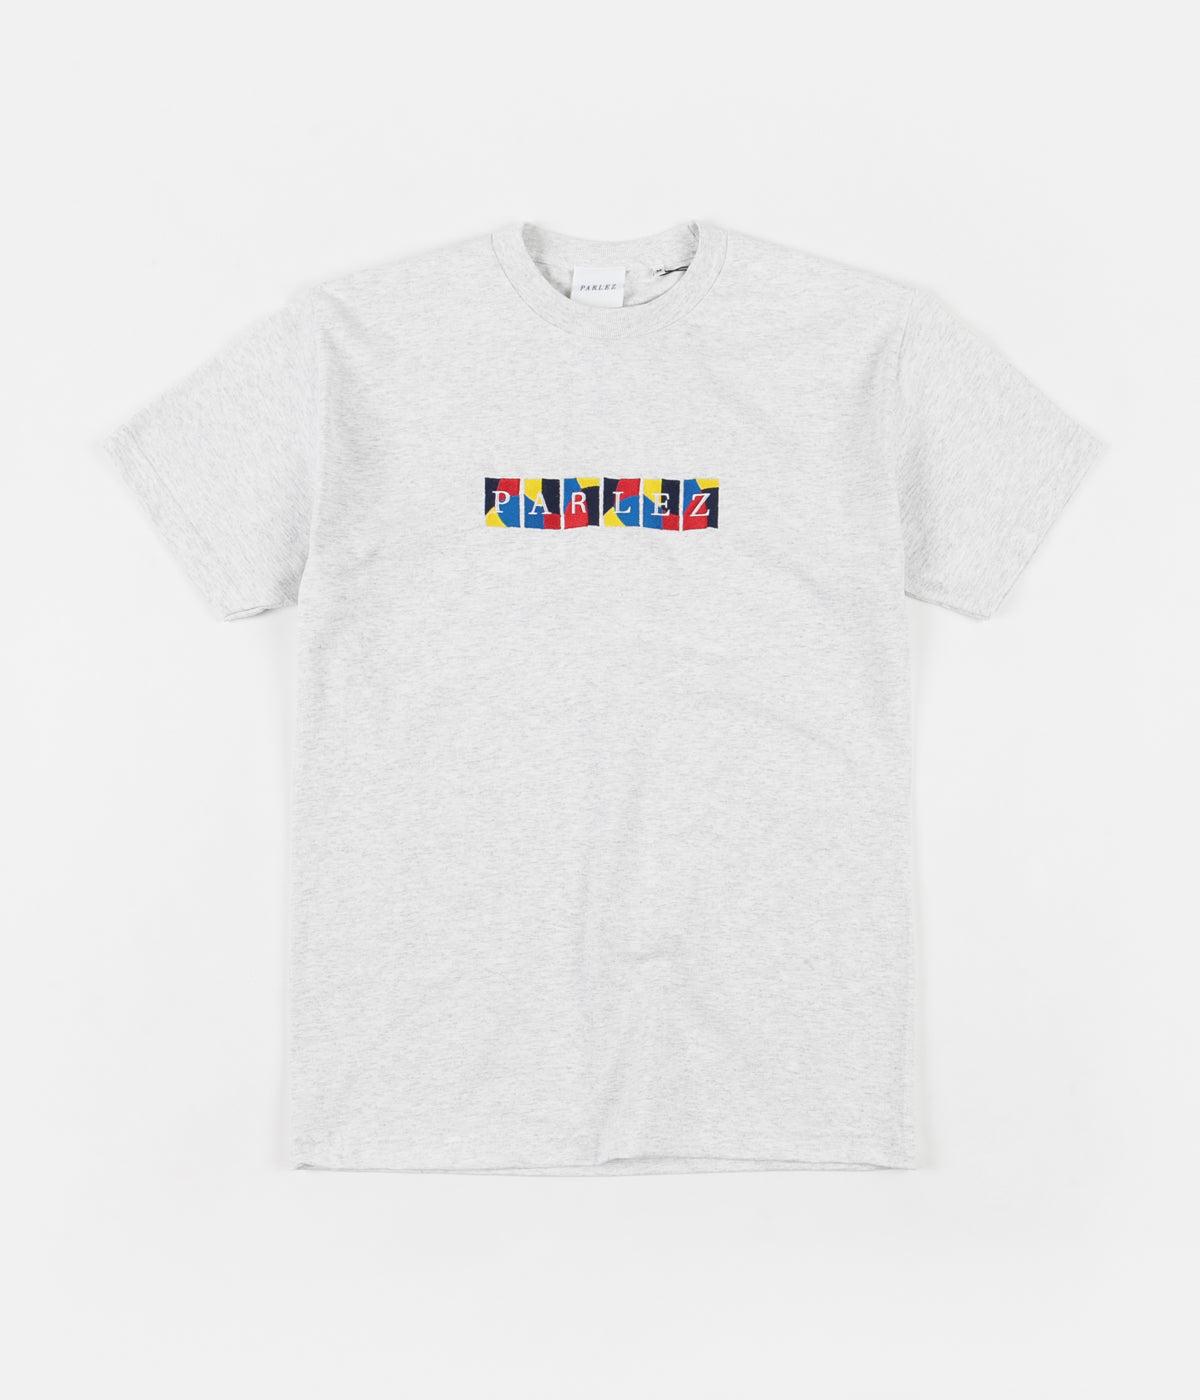 Parlez Wright T-Shirt - Heather